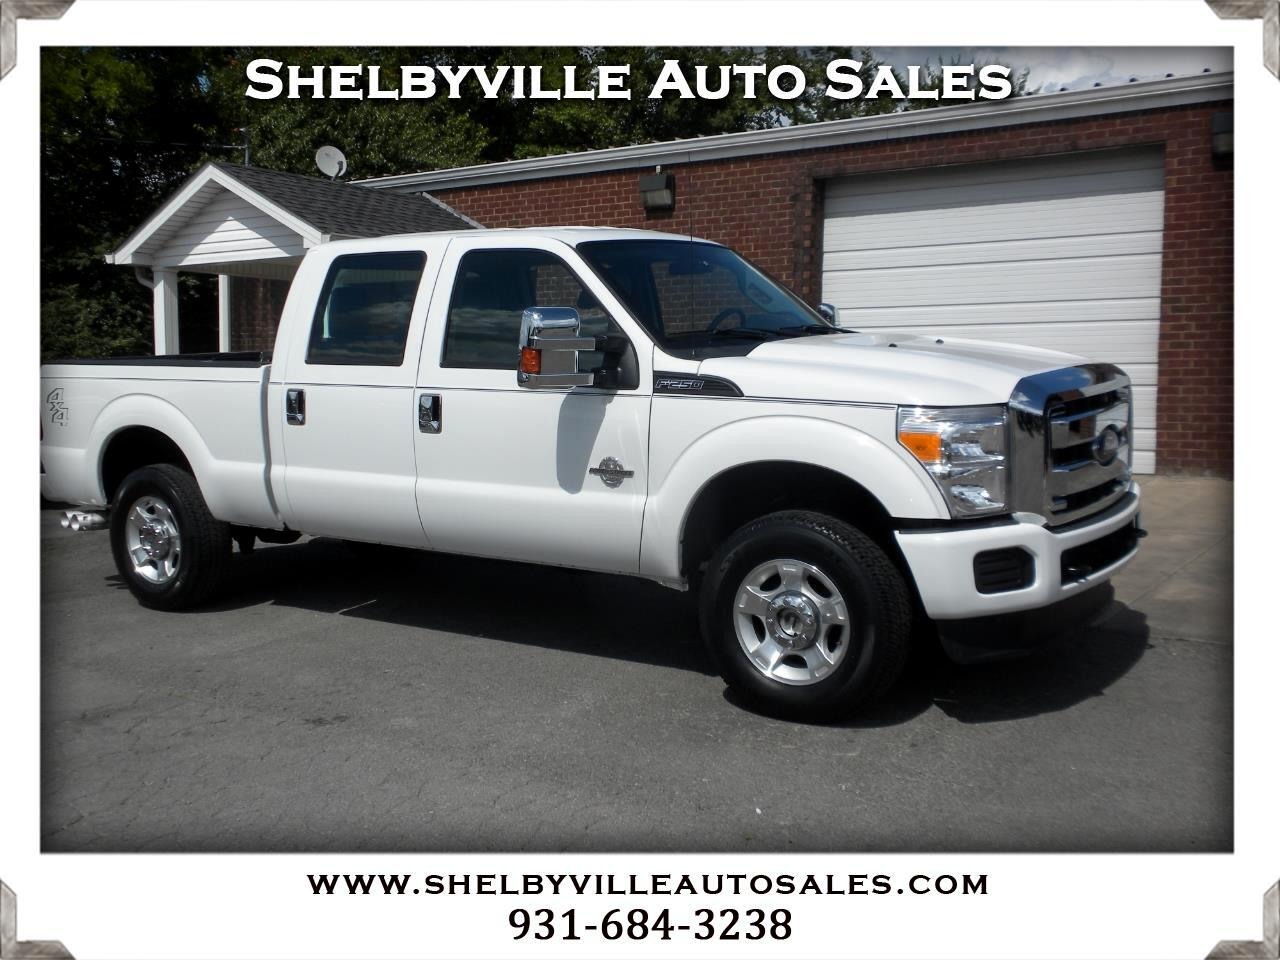 2016 Ford Super Duty F-250 SRW 4X4 Crew Cab XL